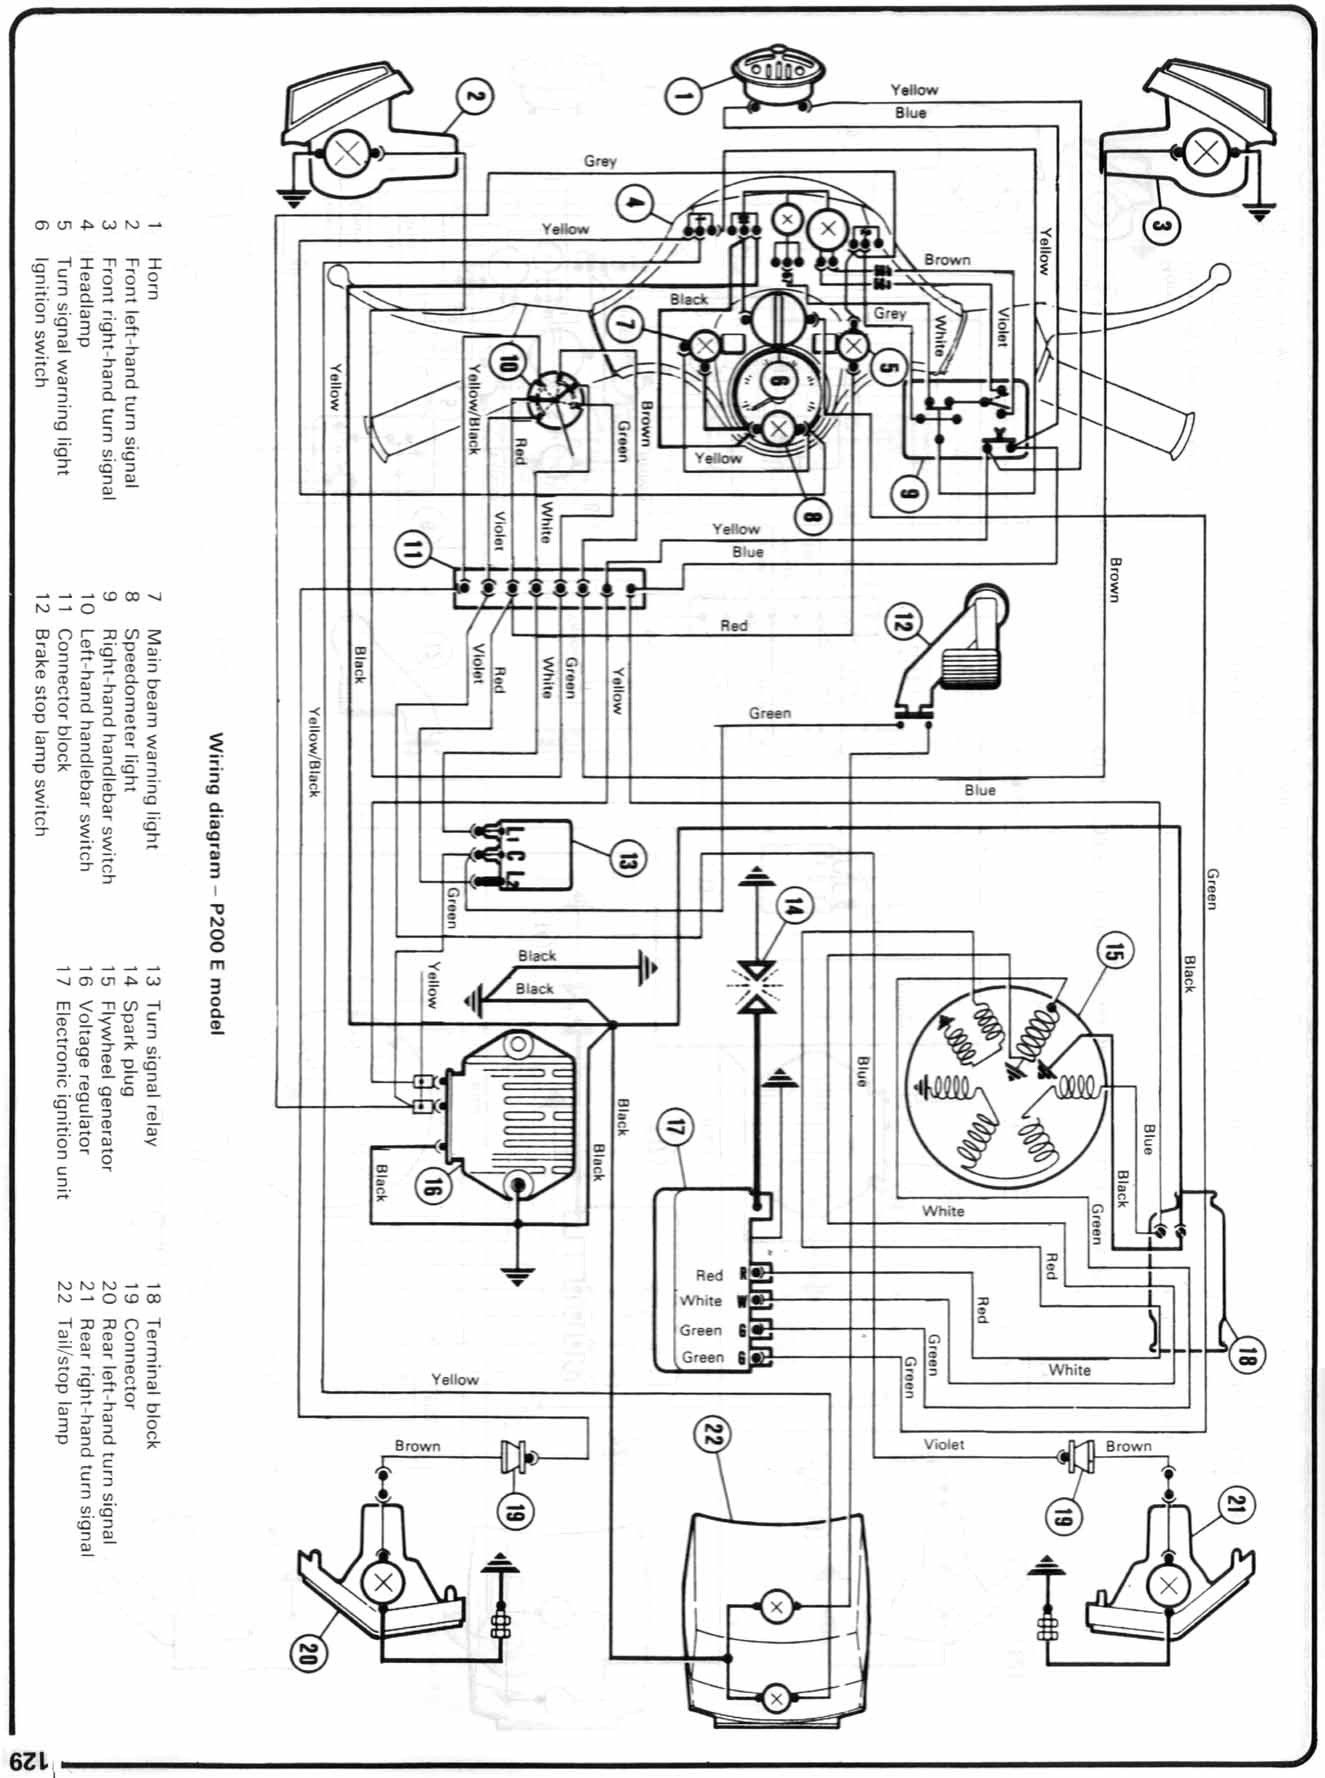 Lovely Wiring Diagram Vespa Excel 150 Diagrams Digramssample Diagramimages Wiringdiagramsample Wiringdiagram